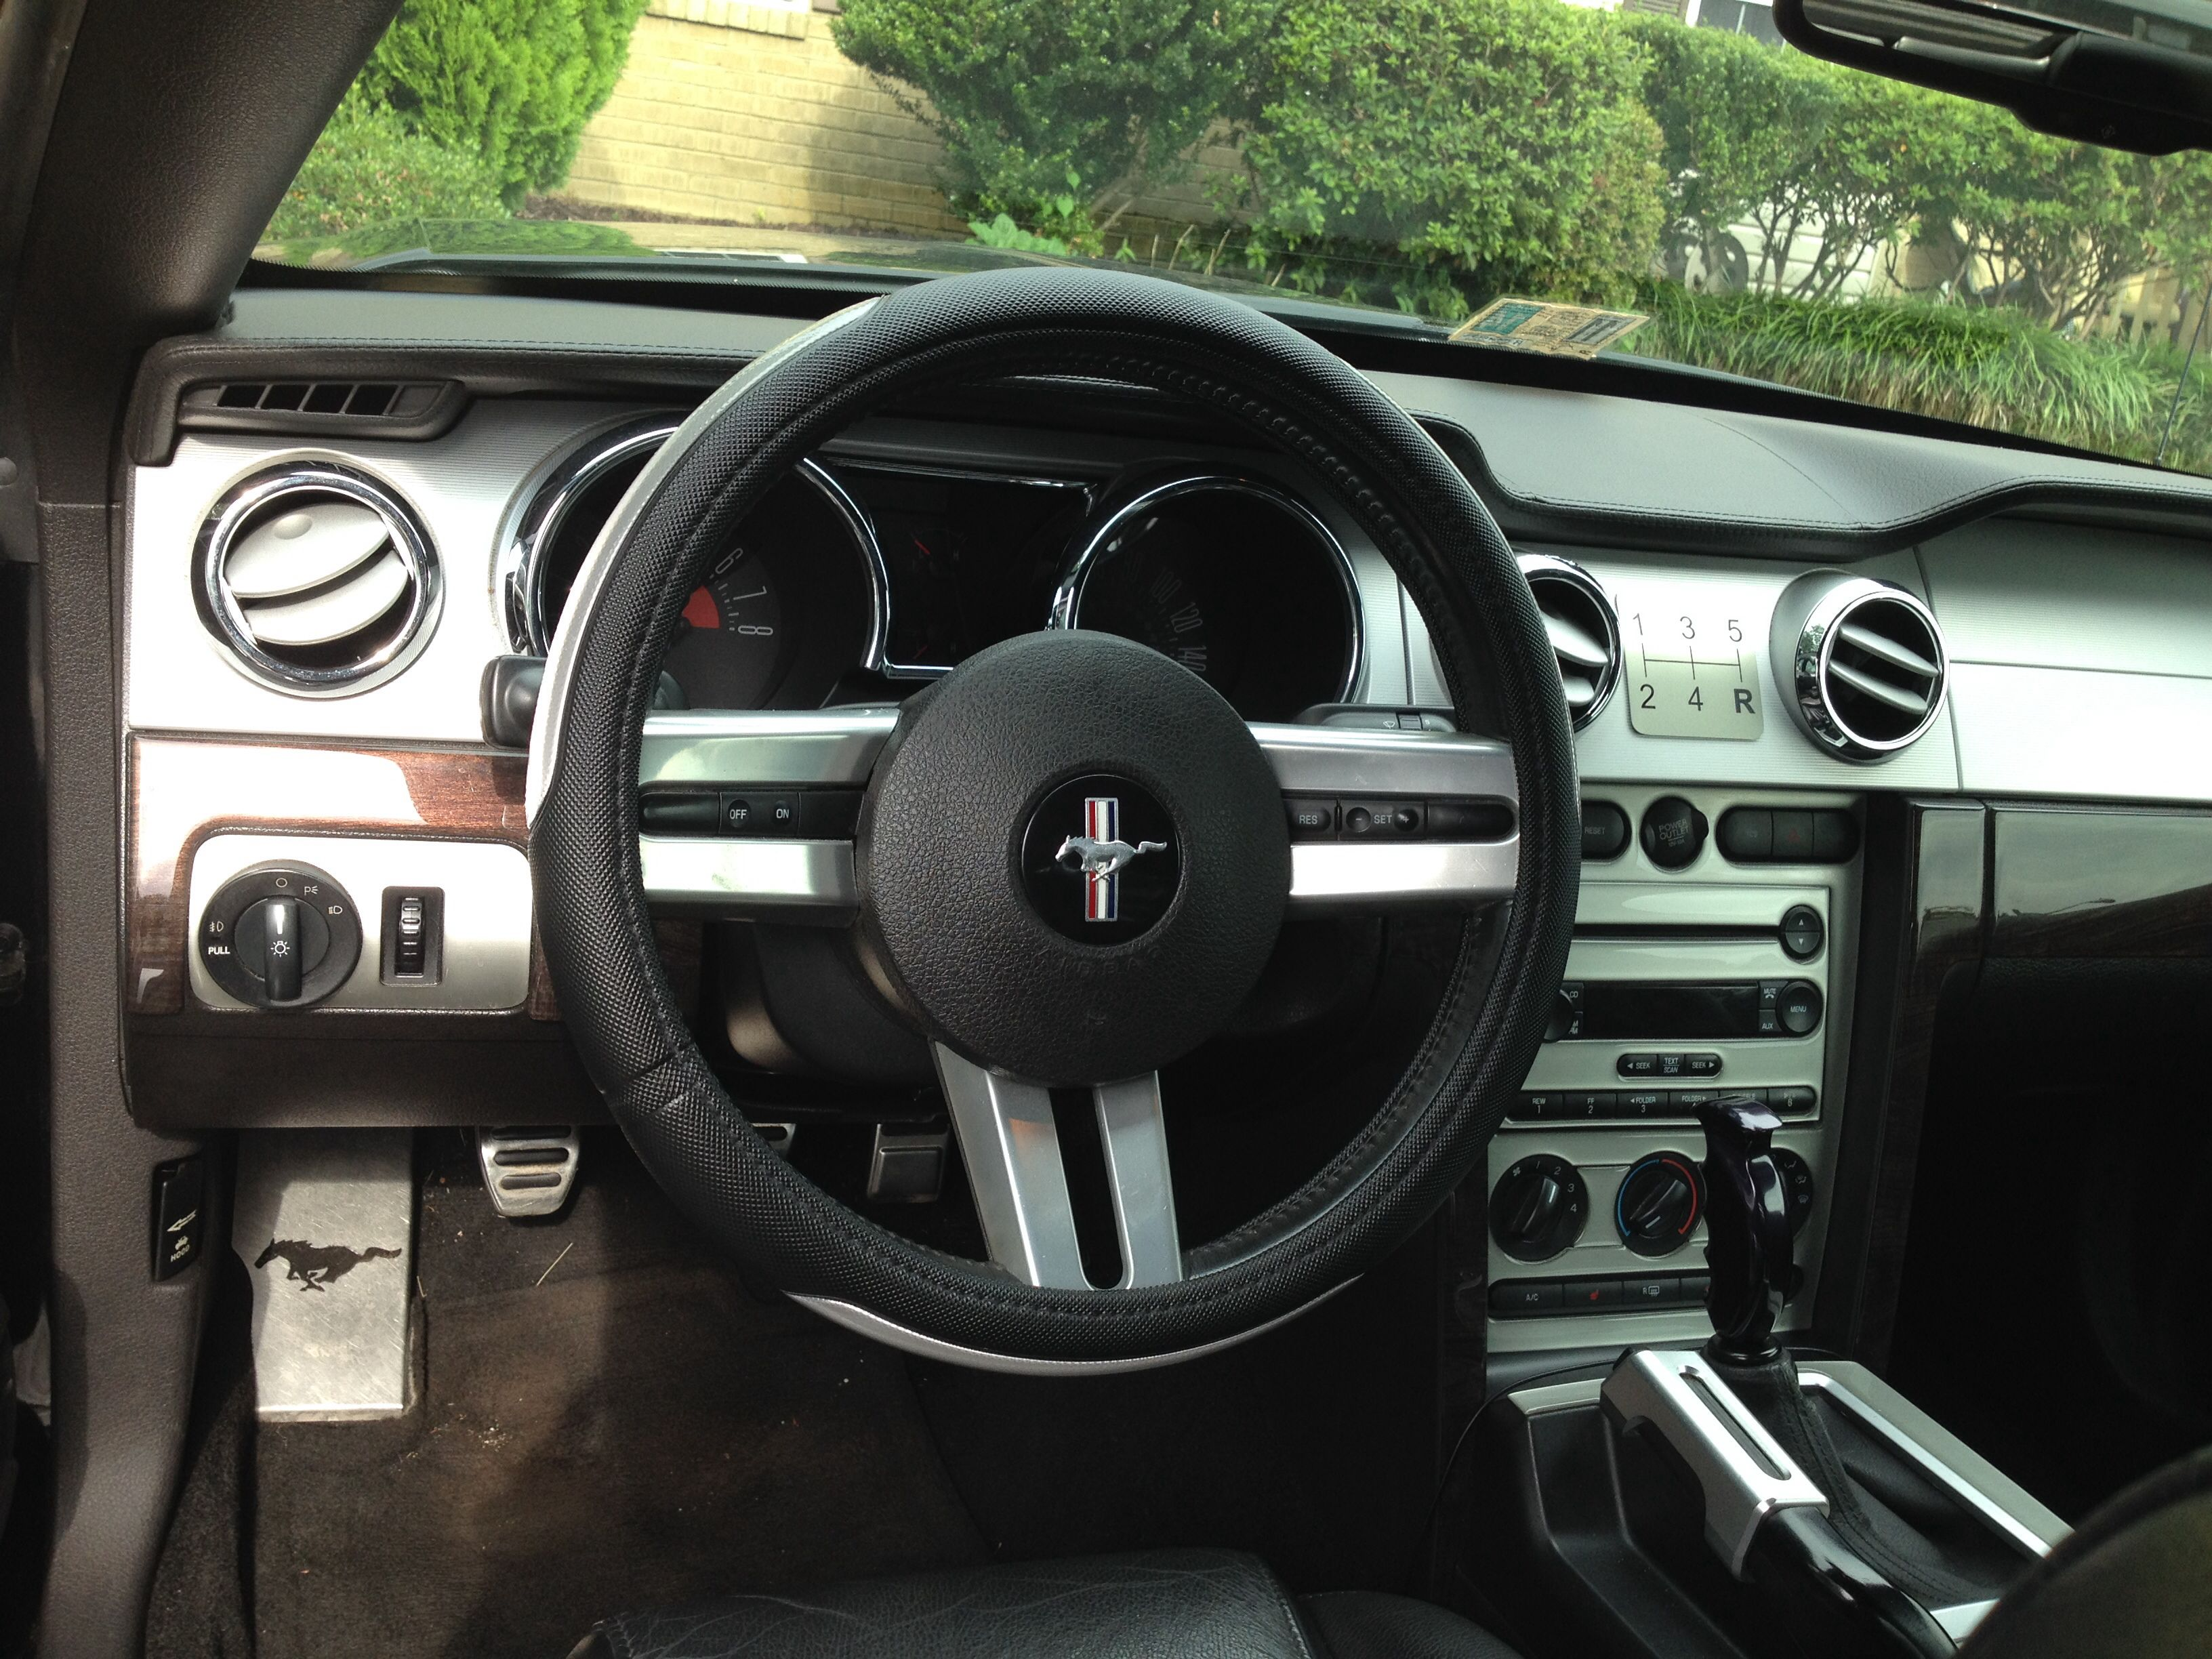 My 2007 Mustang Gt Interior New Steering Wheel Cover And 5 Speed Pattern Dash Plate Other